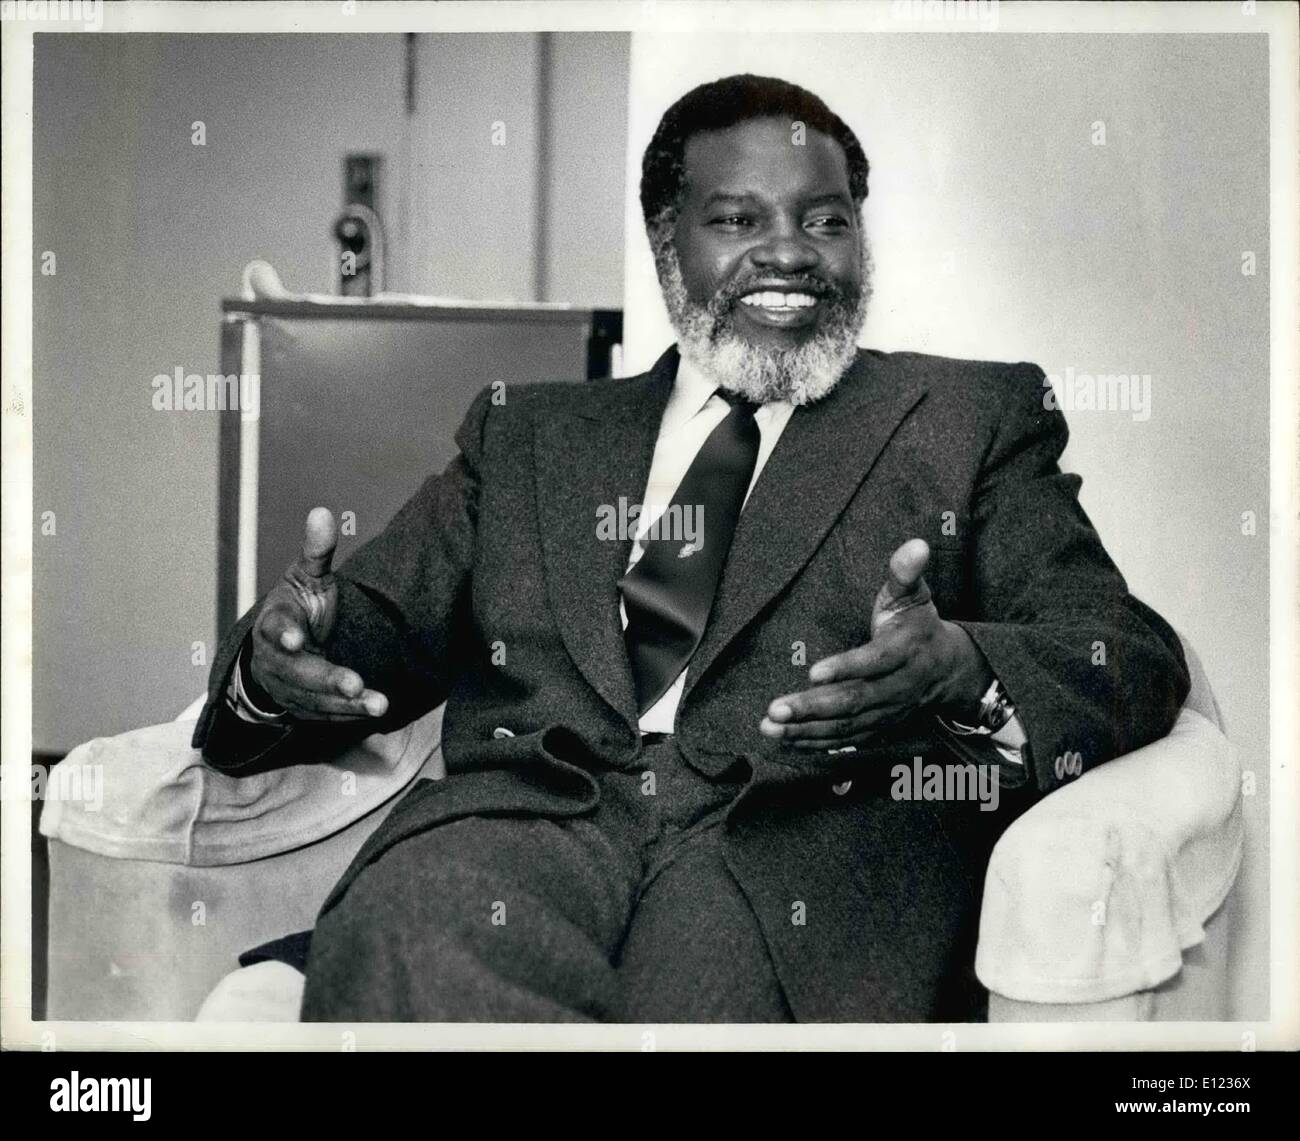 Feb. 02, 1984 - Guerrilla leader Sam Nujoma, President of the South West Africa People's Organization, said his men would continue to fight inside Namibia (South West Africa) while observing a recently concluded disengagement accord between Angola and South Africa. Mr. Nujoma, on the tail end of a trip that has taken him to six countries made his remarks during an interview at the United Nations Hotel in New York City. ''The fight in Namibia will continue, because there is no cease-fire in Namibia'' Mr. Nujoma said through he added that swapo was ready to sign a cease-fire with South Africa - Stock Image